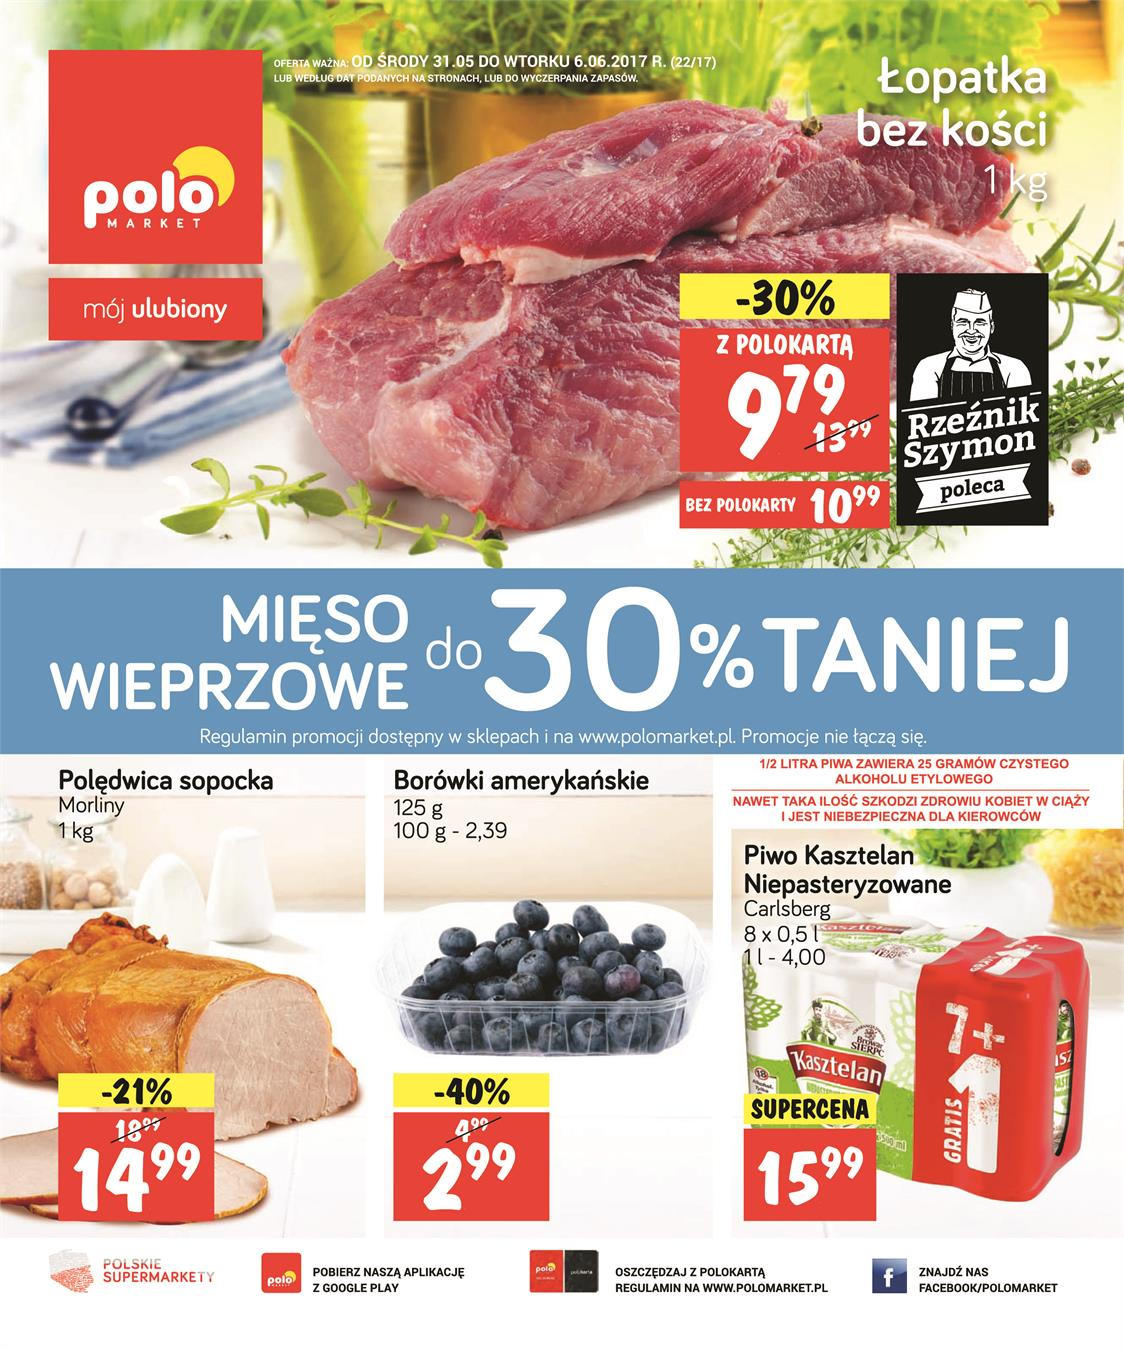 Gazetka Polomarket Sp. z o.o. nr 0 od 2017-05-31 do 2017-06-06